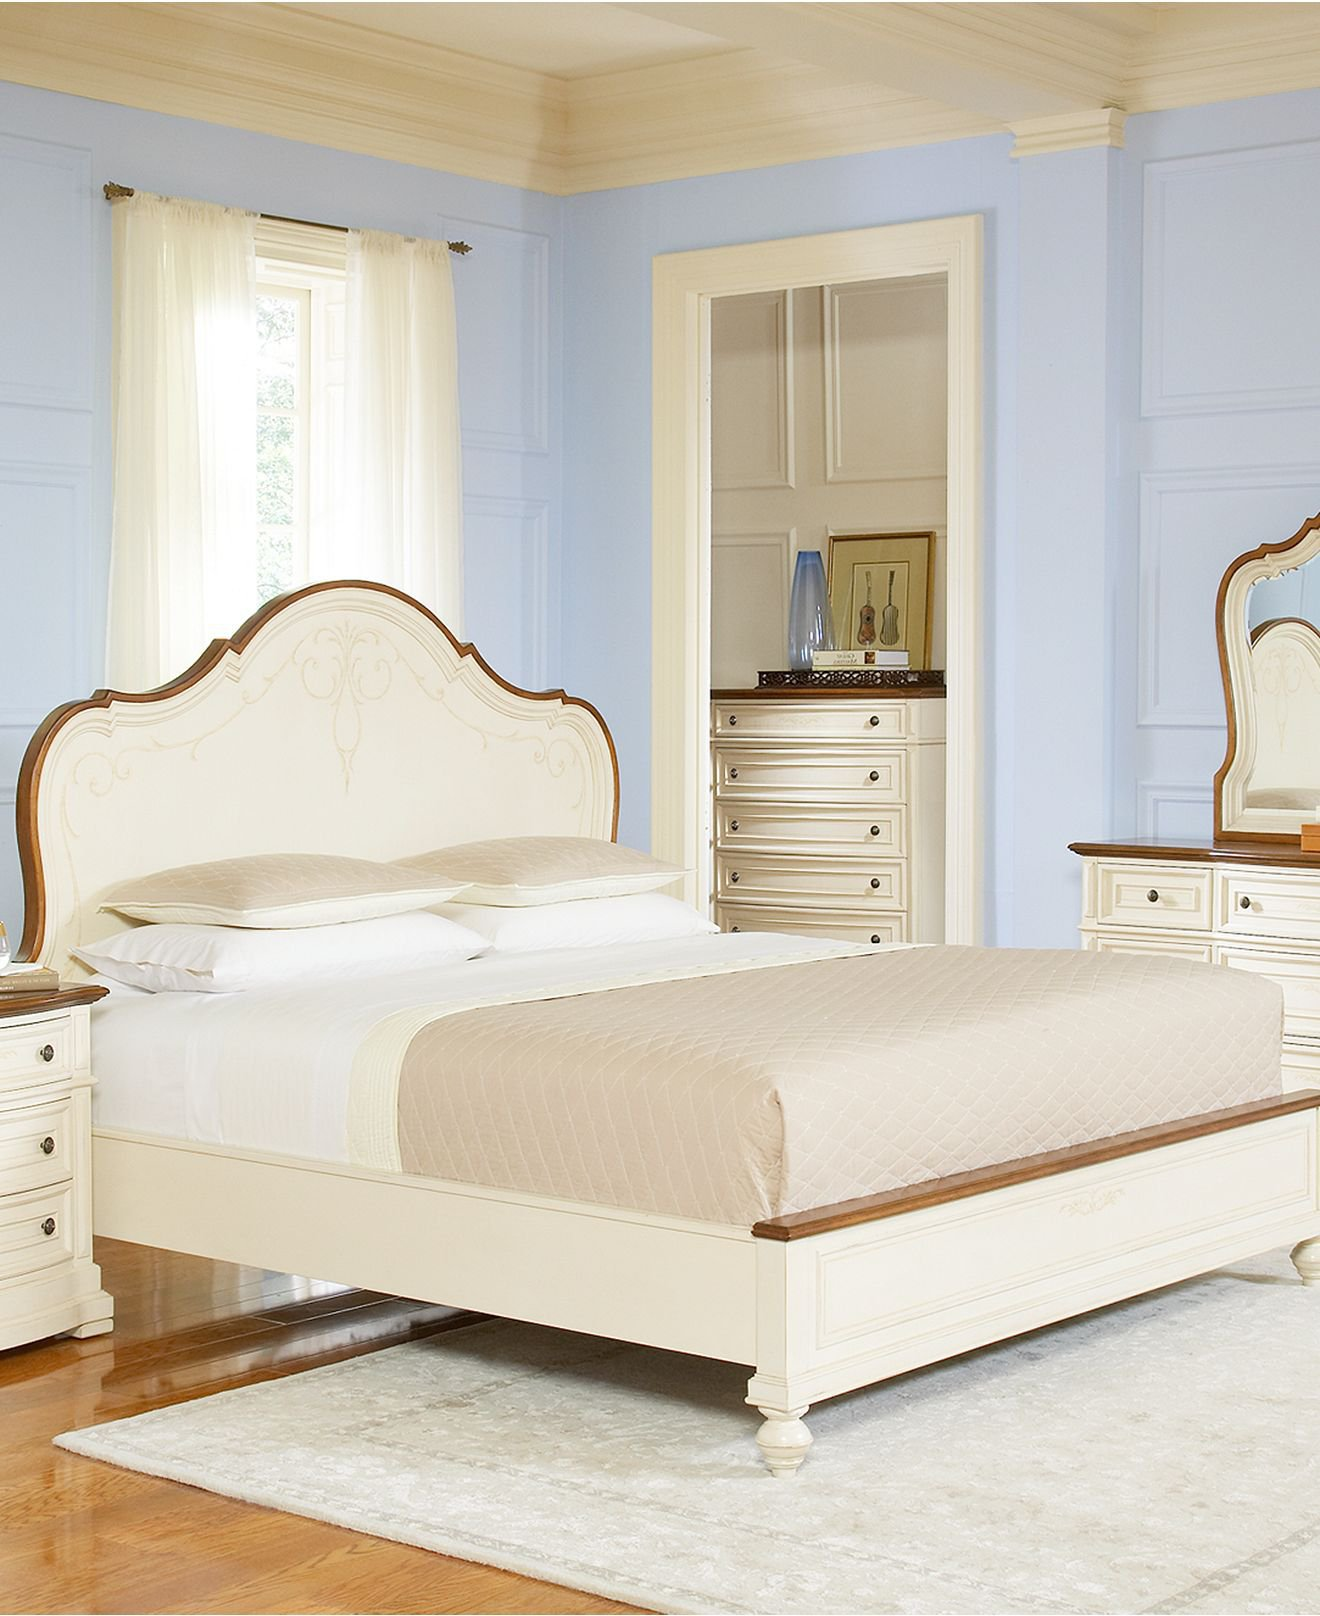 Coventry Bedroom Furniture Sets & Pieces from Macy s